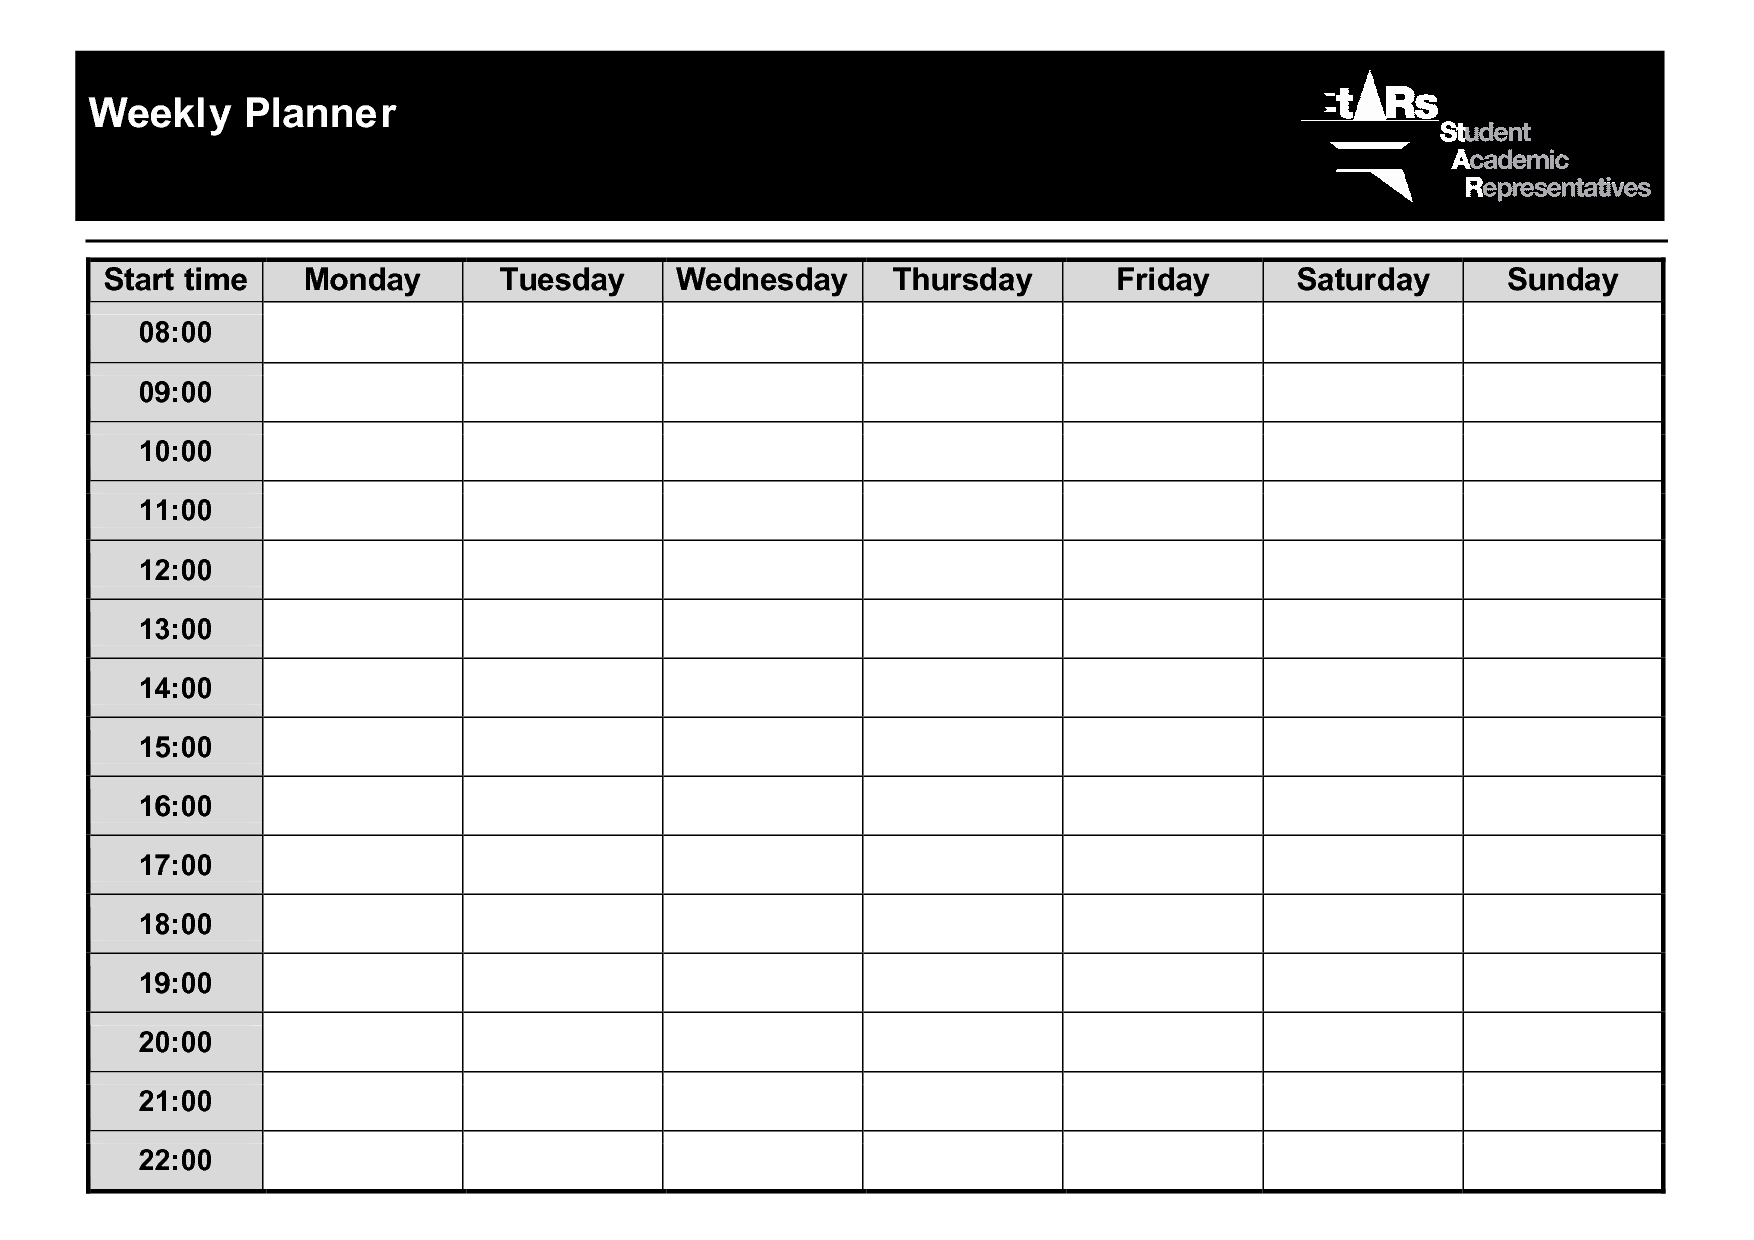 Weekly+Planner+Template+Pdf | Weekly Planner Template, Free inside Weekly Planner With Times Pdf